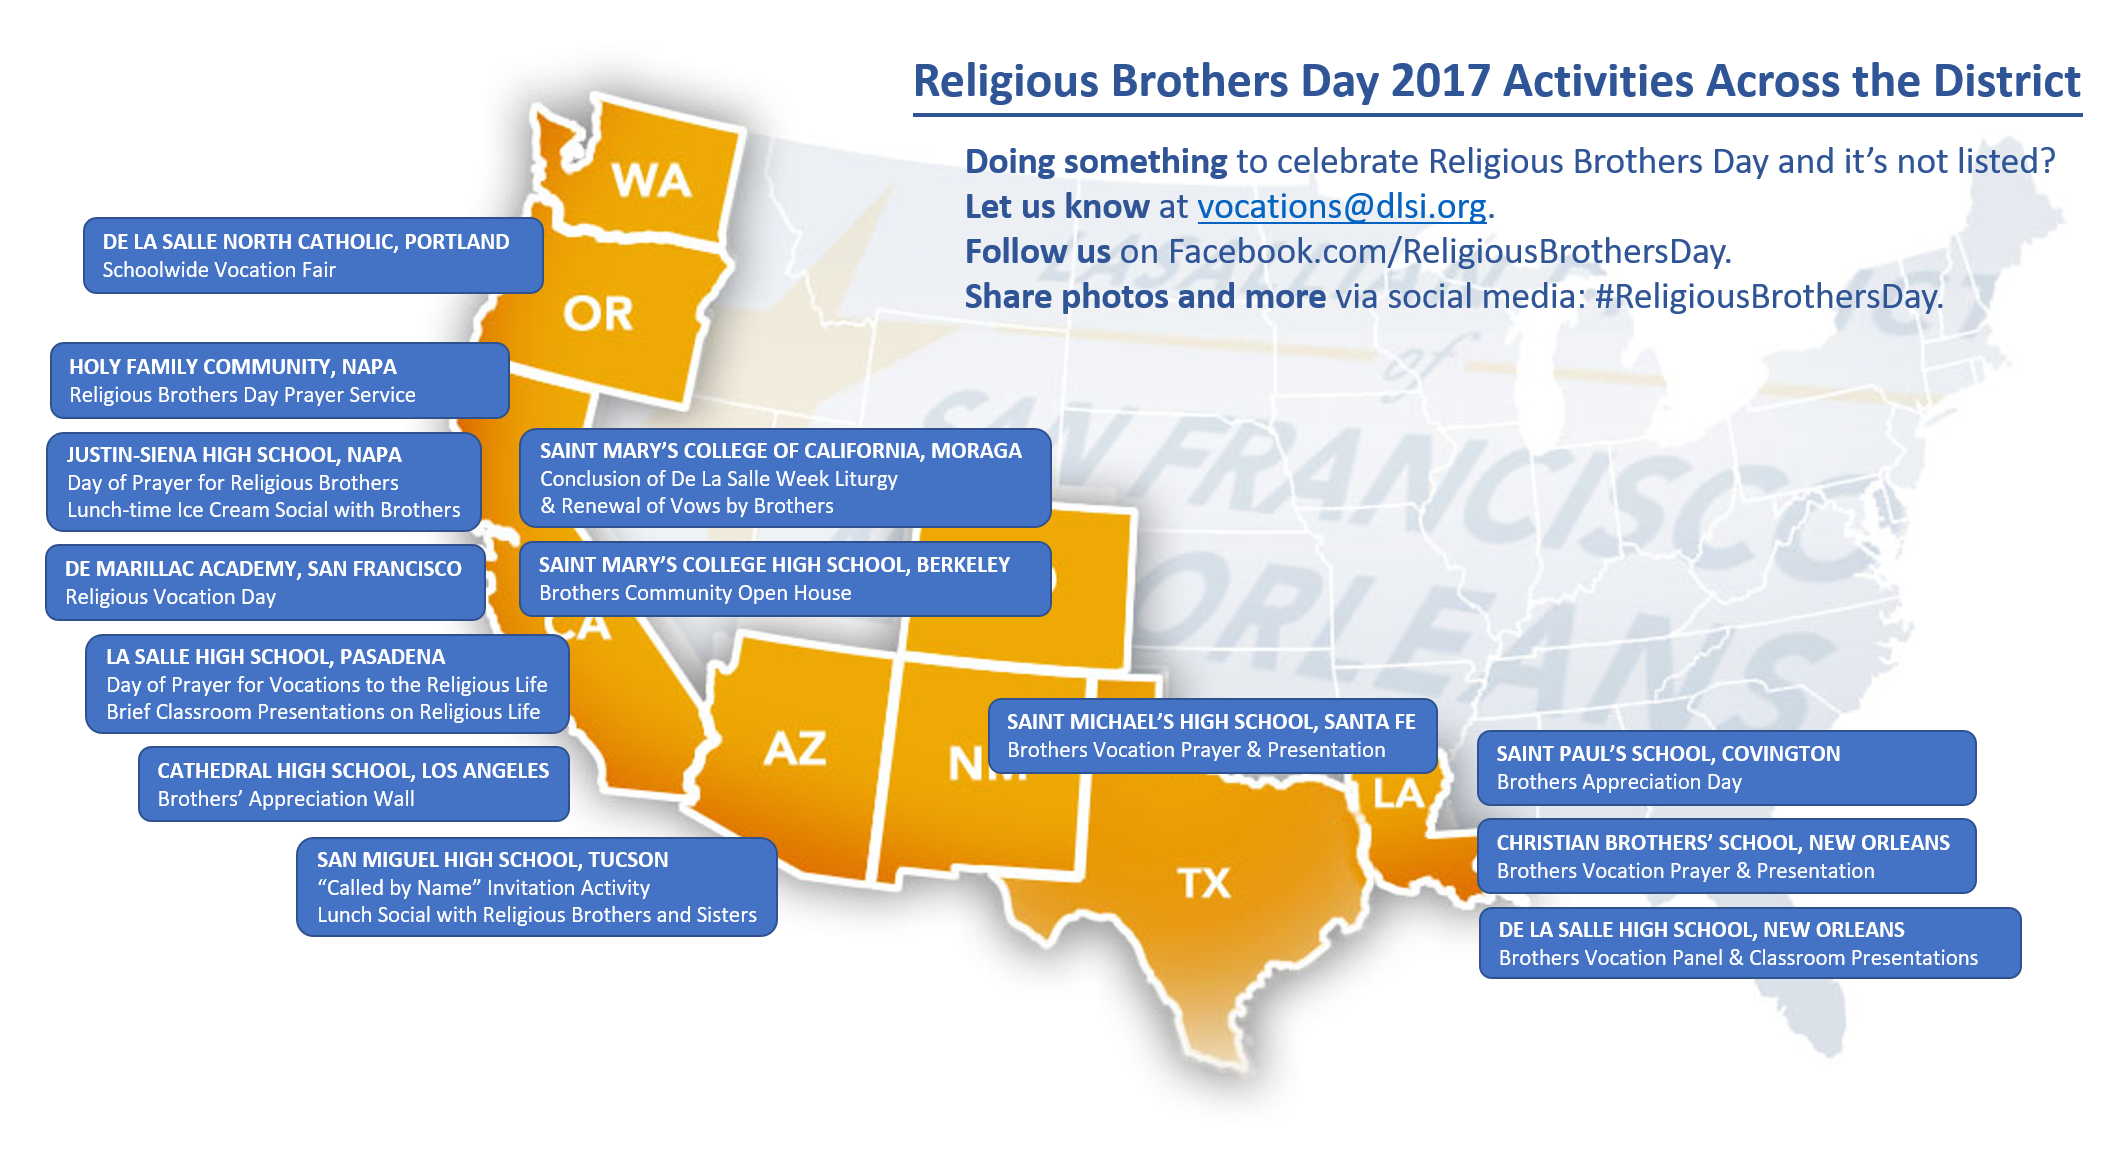 RBD 2017 Activities Map